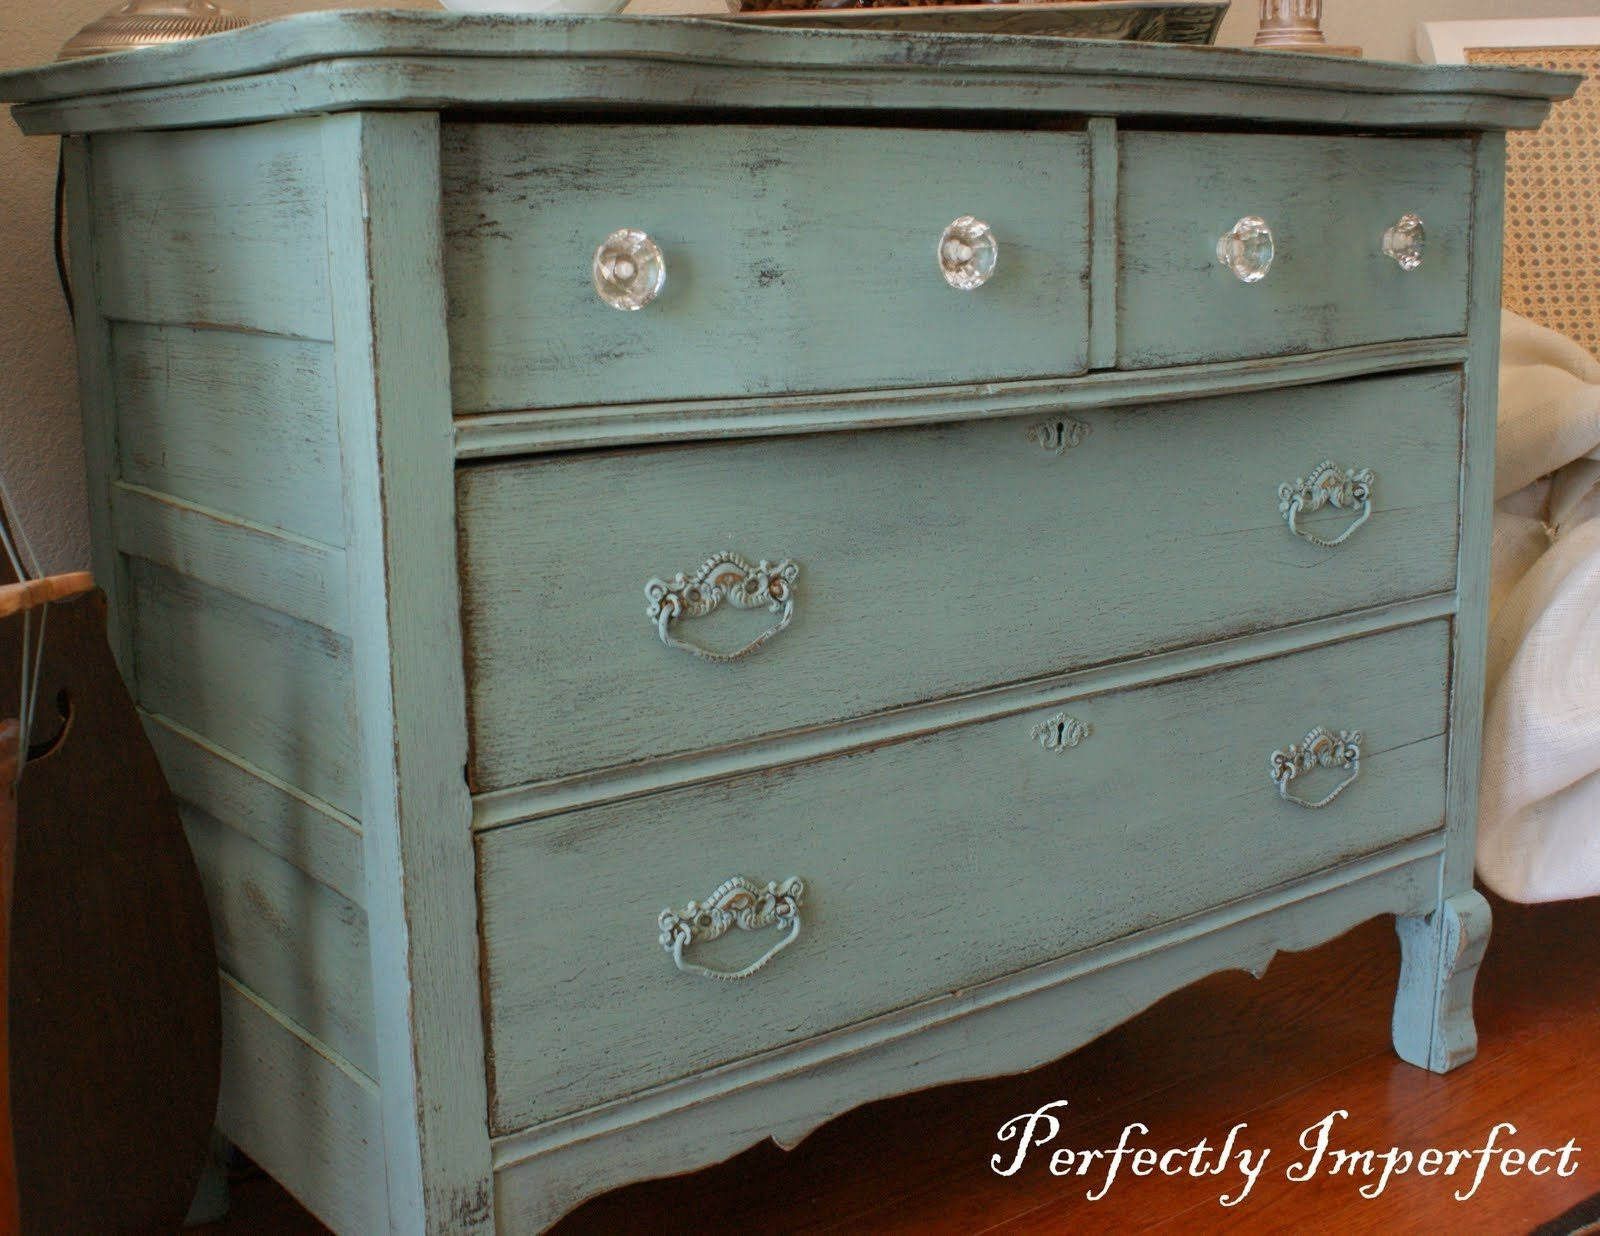 10 Famous Ideas For Painting A Dresser refinishing a dresser best of dresser ideas comfortable refinishing 2020